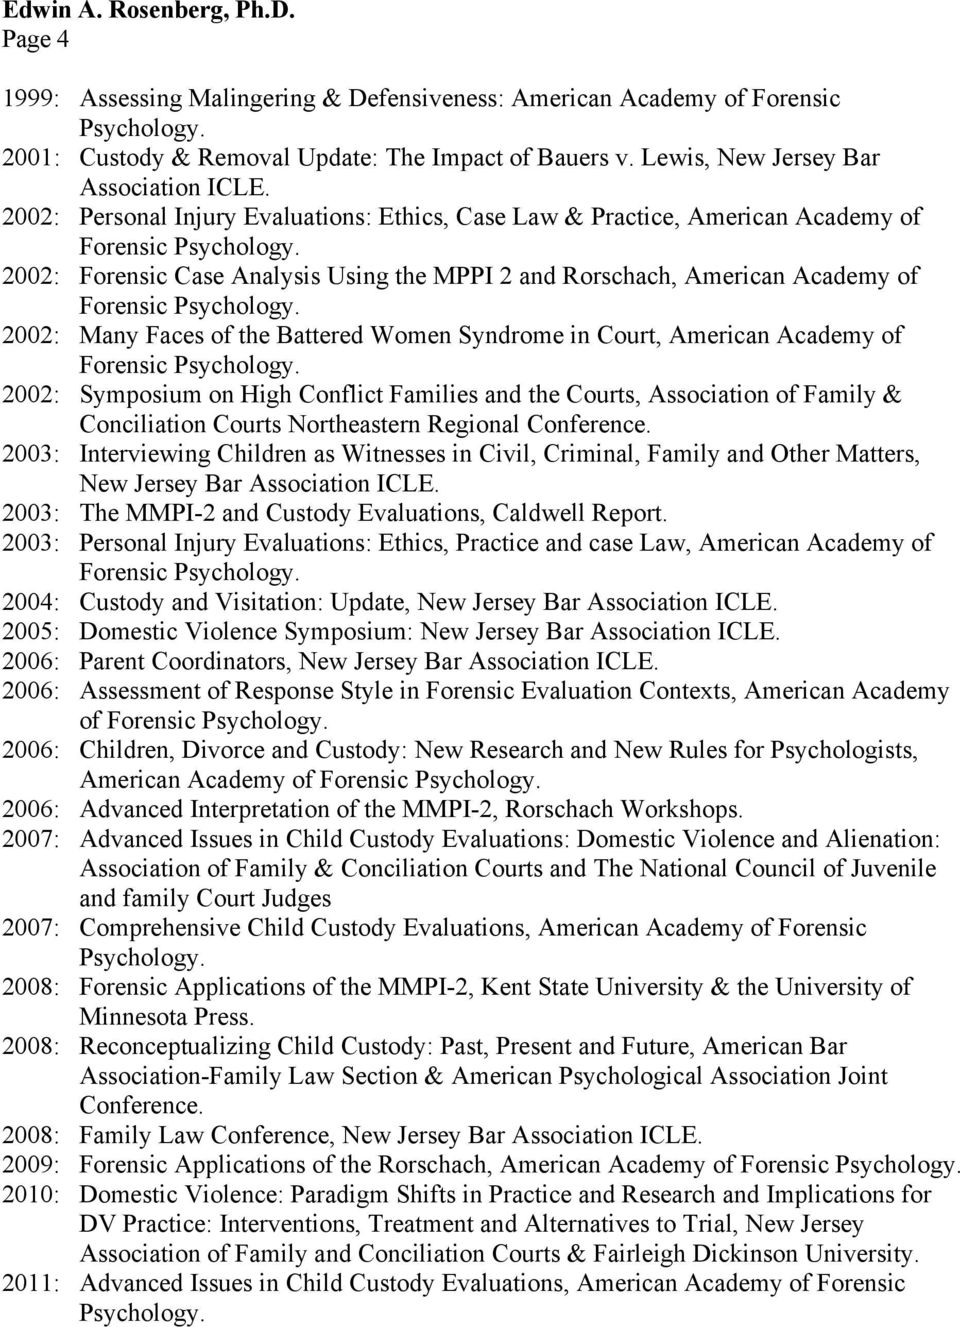 Faces of the Battered Women Syndrome in Court, American Academy of 2002: Symposium on High Conflict Families and the Courts, Association of Family & Conciliation Courts Northeastern Regional